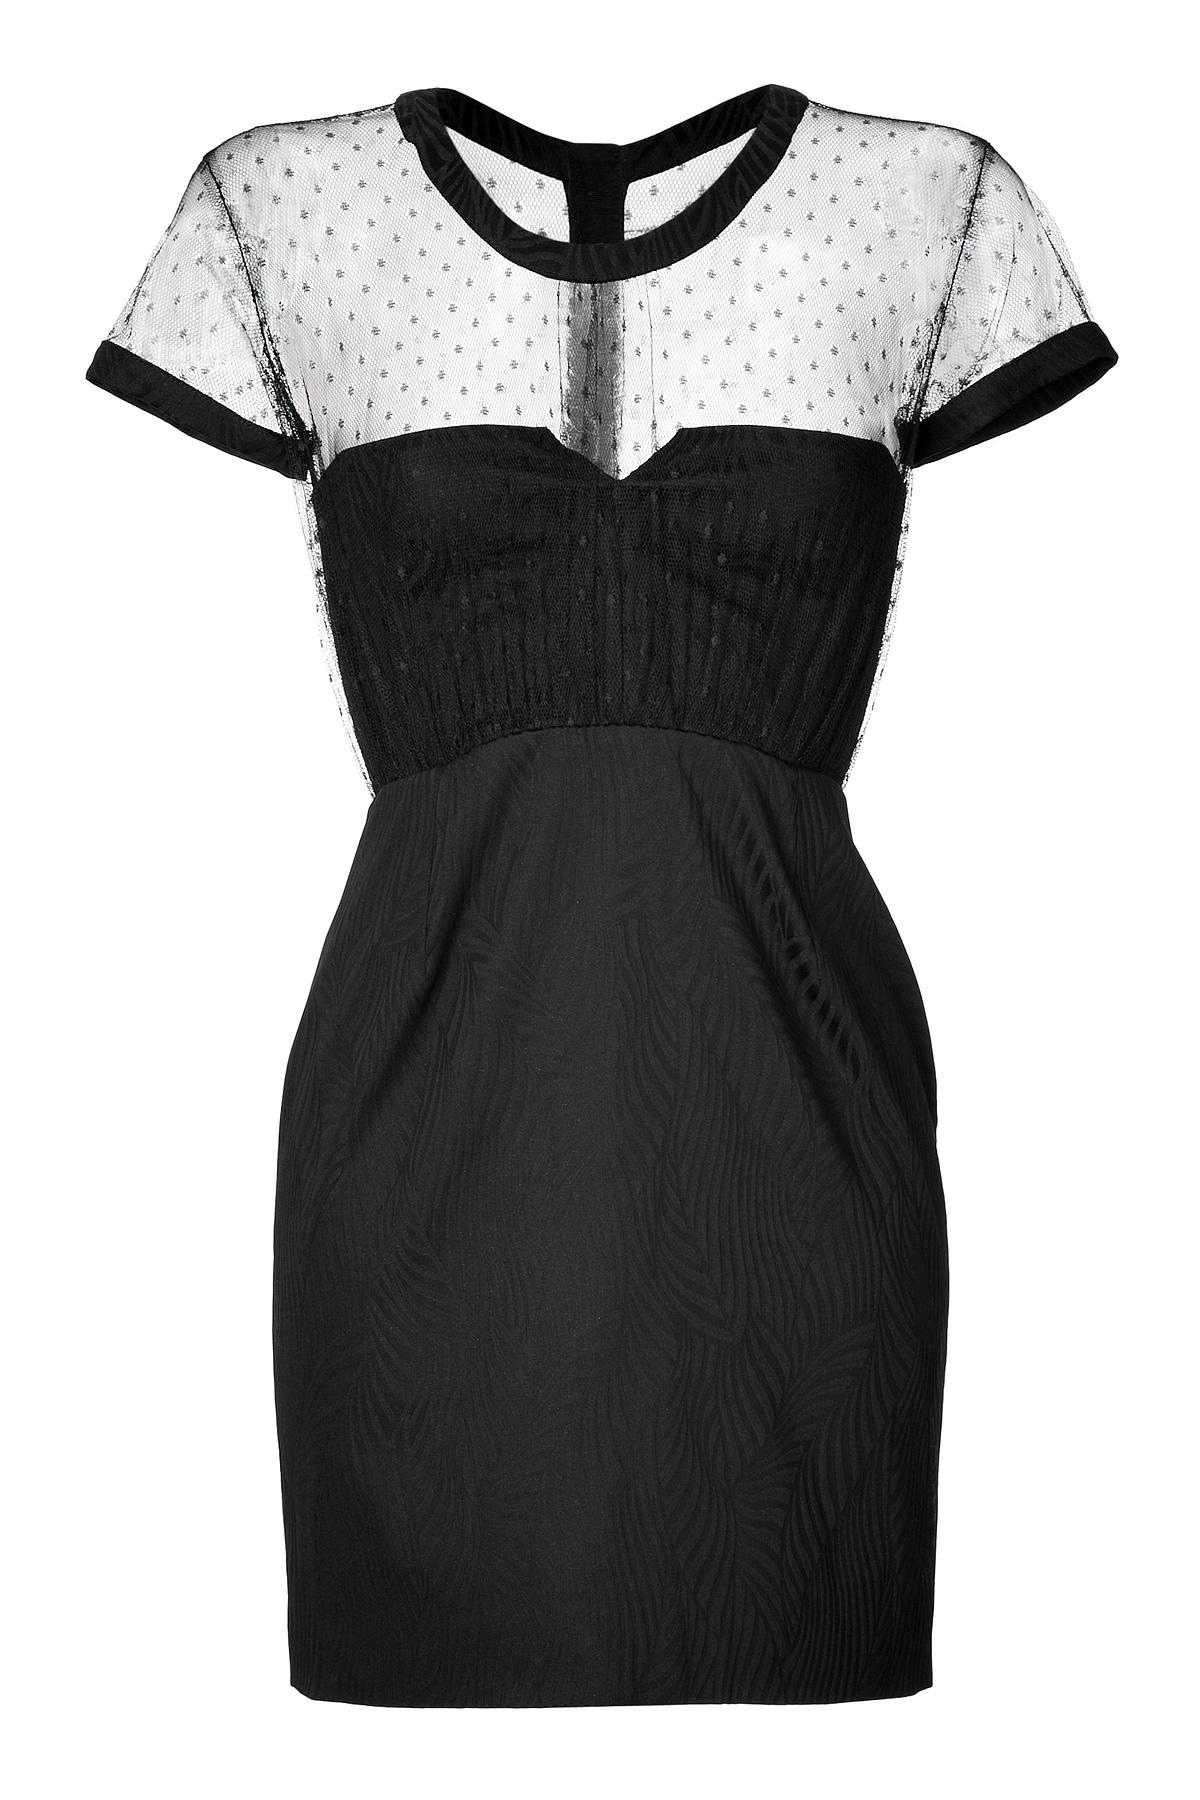 The Kooples Short Sleeve Dress With Sheer Dotted Swiss Top